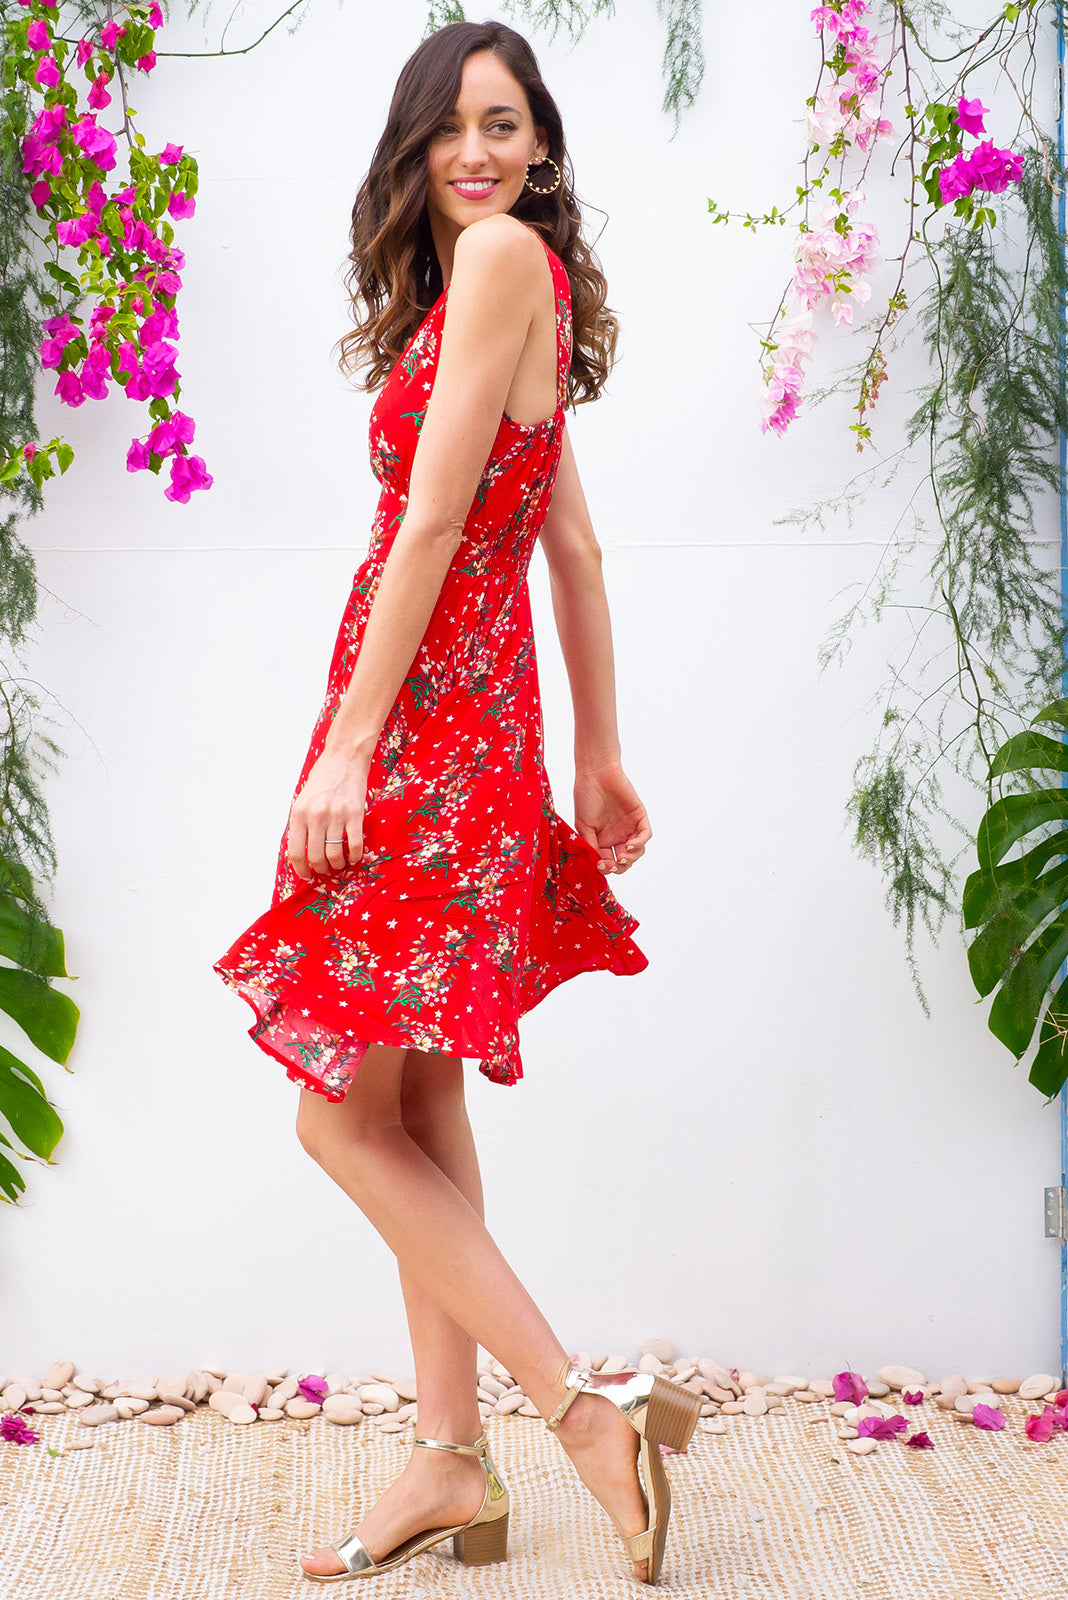 Little Lola Red Stars dress features a vintage inspired fitted basque waist and elasticated waist with a sleeveless design and deep v neck the fabric is a soft woven rayon in a bright red stars and floral print